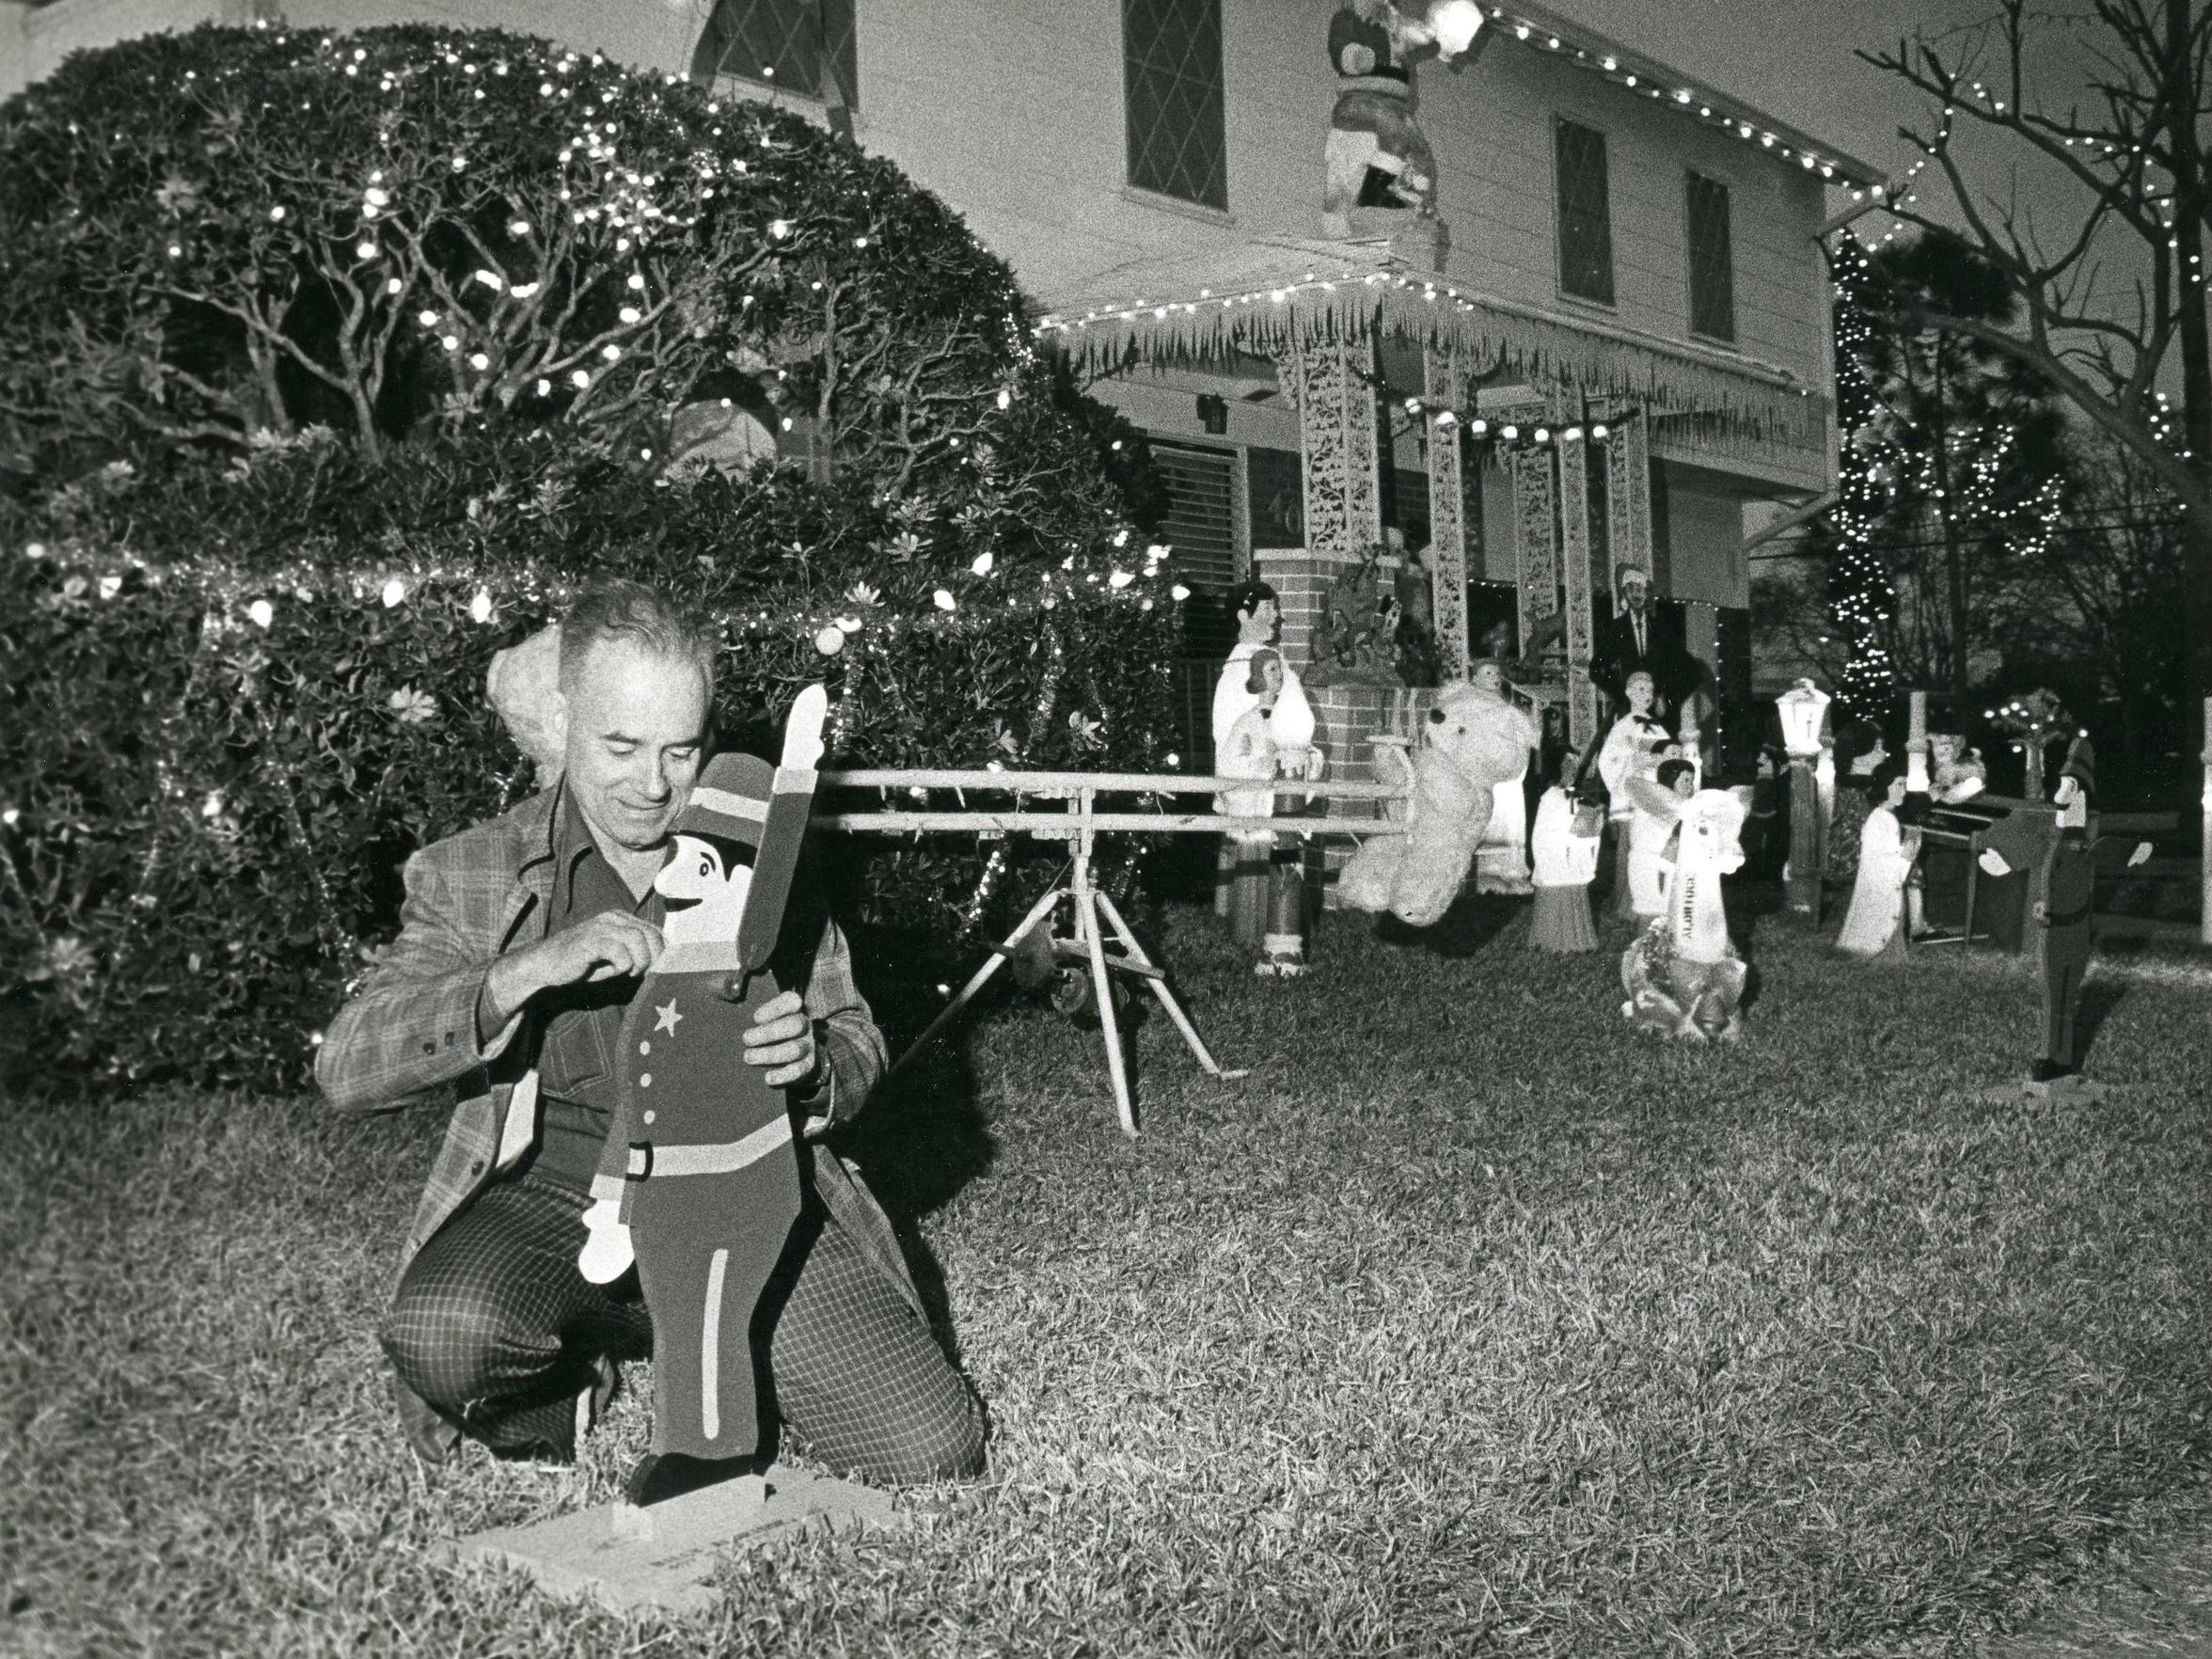 Billy Aldridge adjusts one of the multitude of Christmas decorations in his yard at the corner of Delaine Drive and Doddridge Street in 1980.